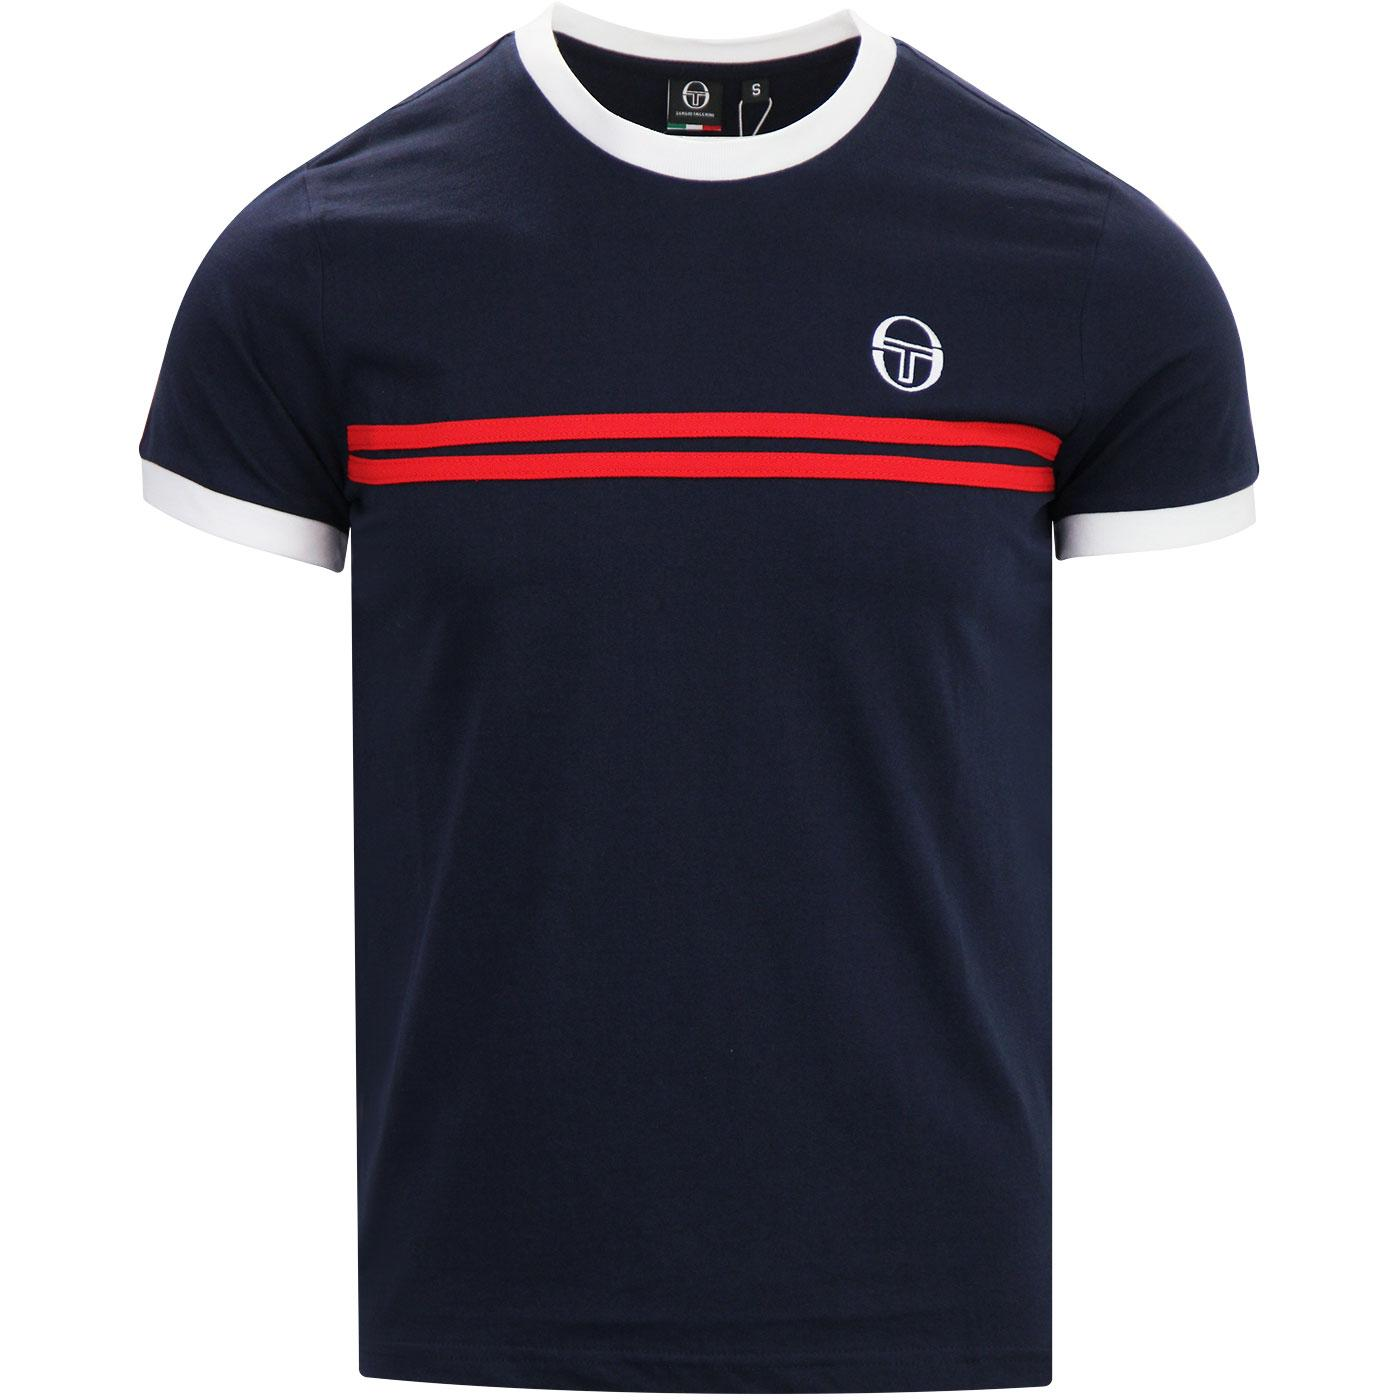 Supermac 3 SERGIO TACCHINI Retro 80's Tee NAVY/RED